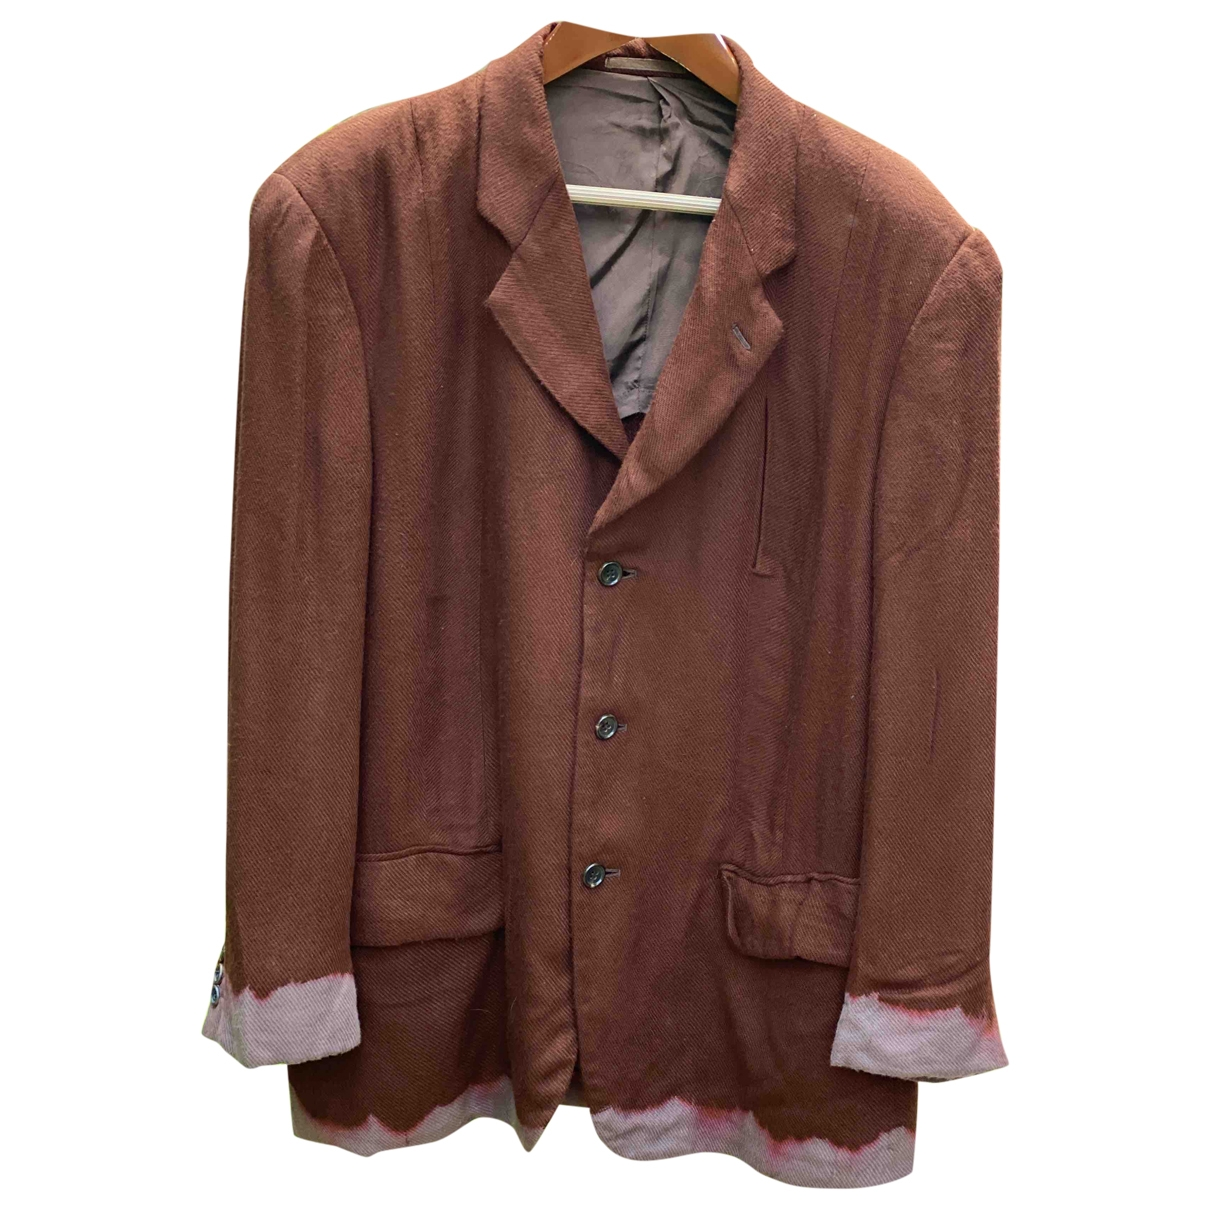 Comme Des Garcons \N Brown Cotton jacket  for Men S International